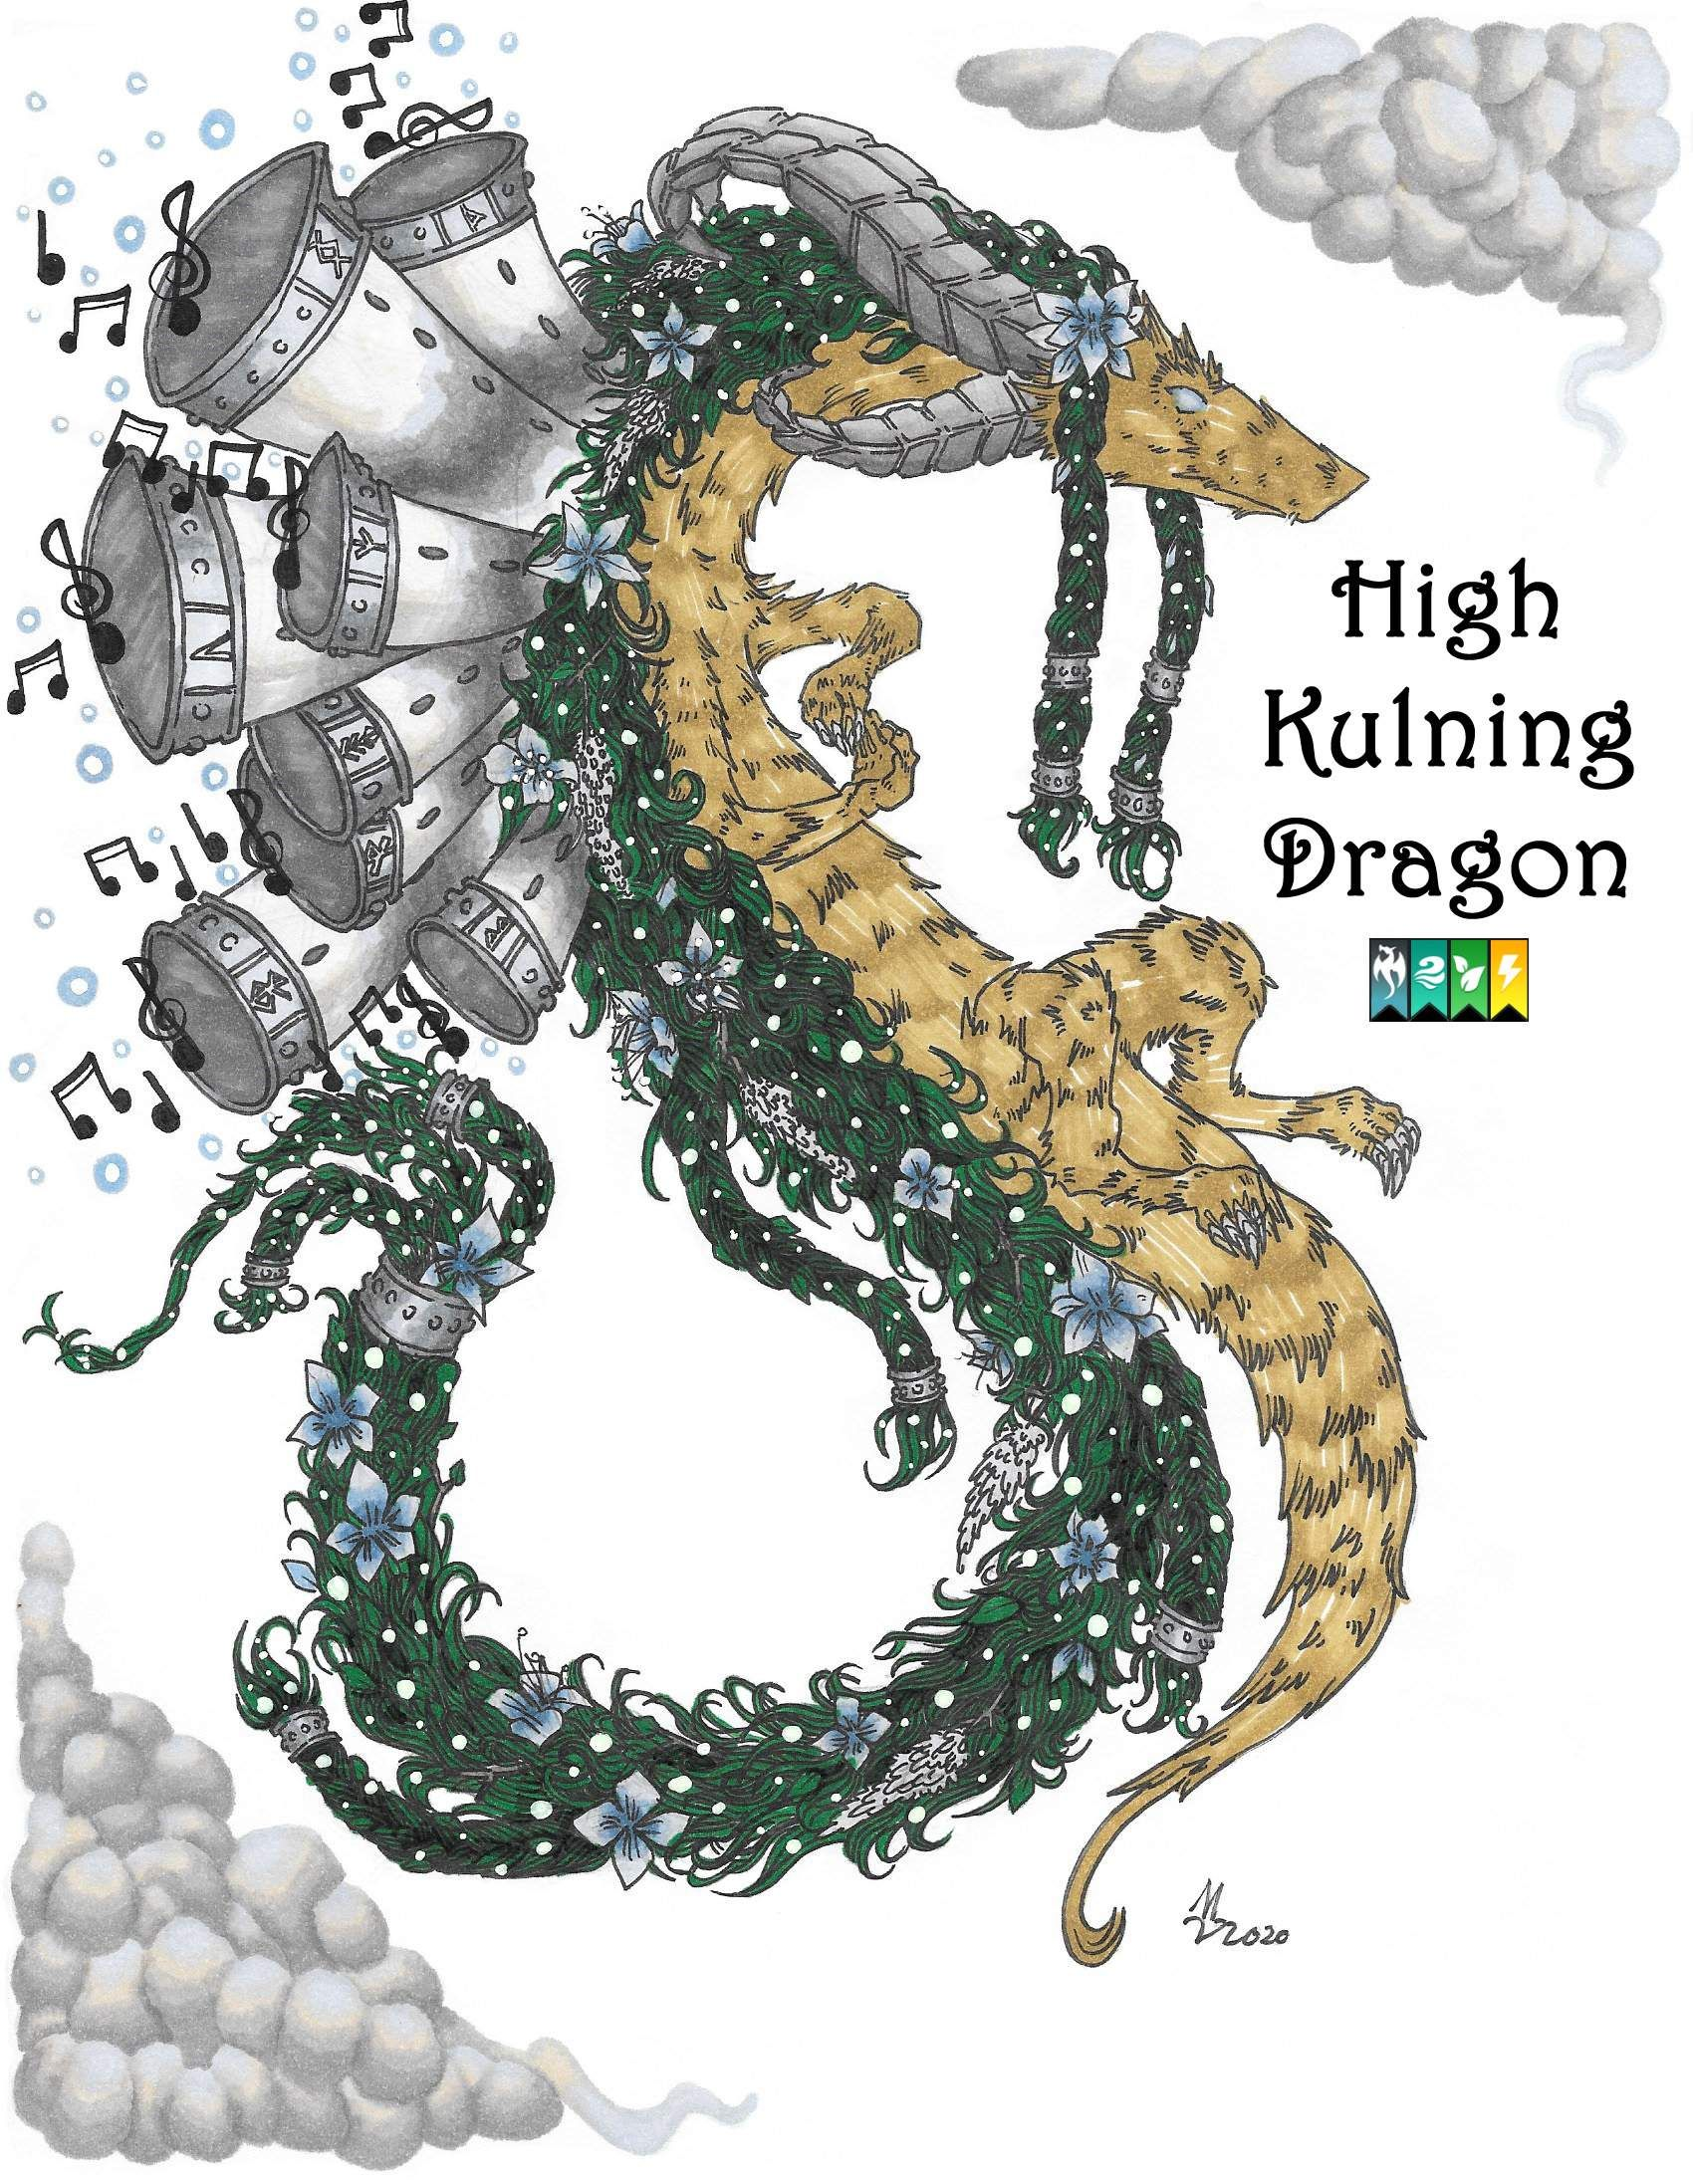 0_1599458612948_High Kulning Dragon.jpg